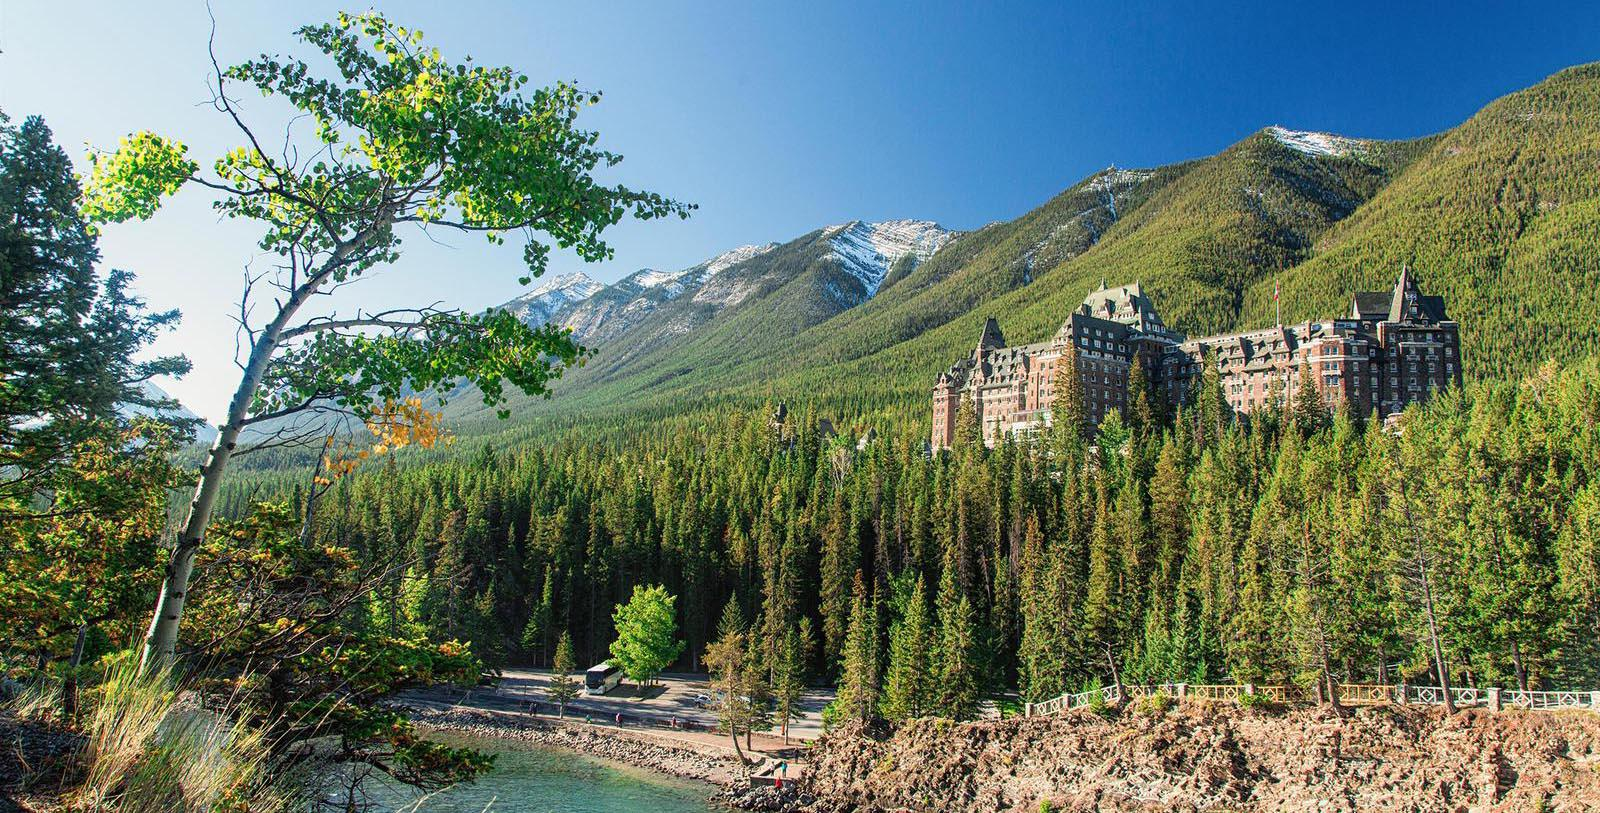 Discover the wonderful Baronial-style architecture of the Fairmont Banff Springs.